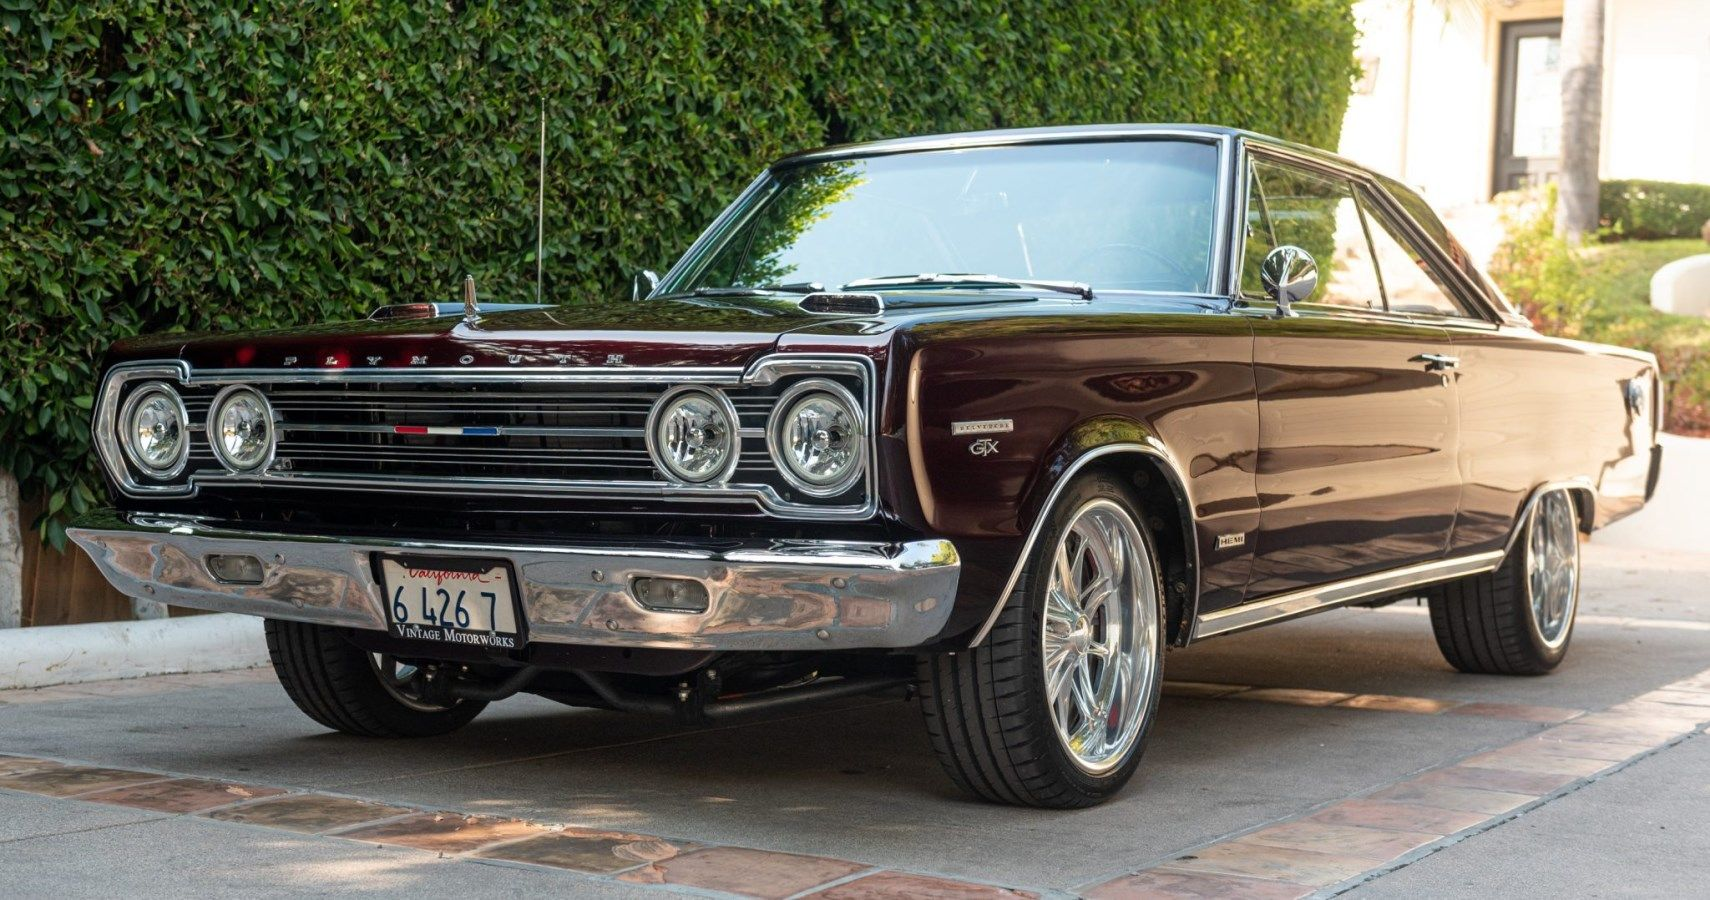 Bring A Trailer: Metallic Red 1967 Plymouth GTX With Hemi V8